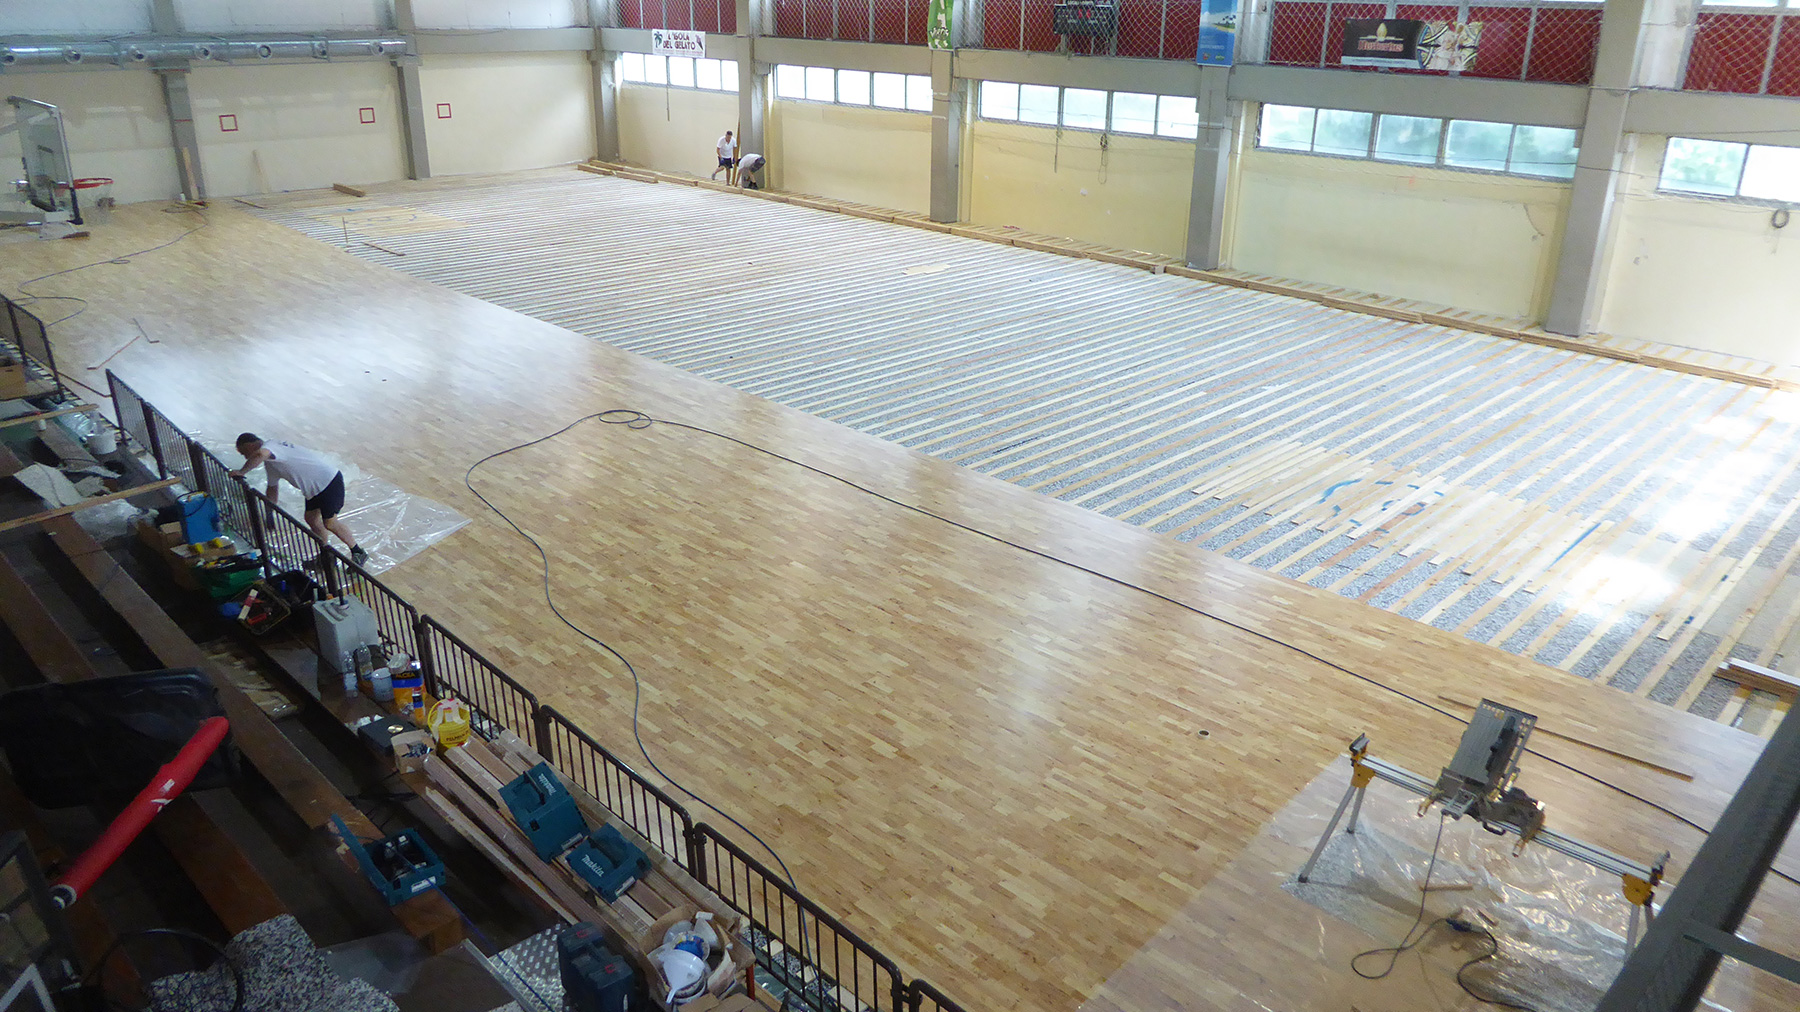 The technicians complete half the laying of the parquet